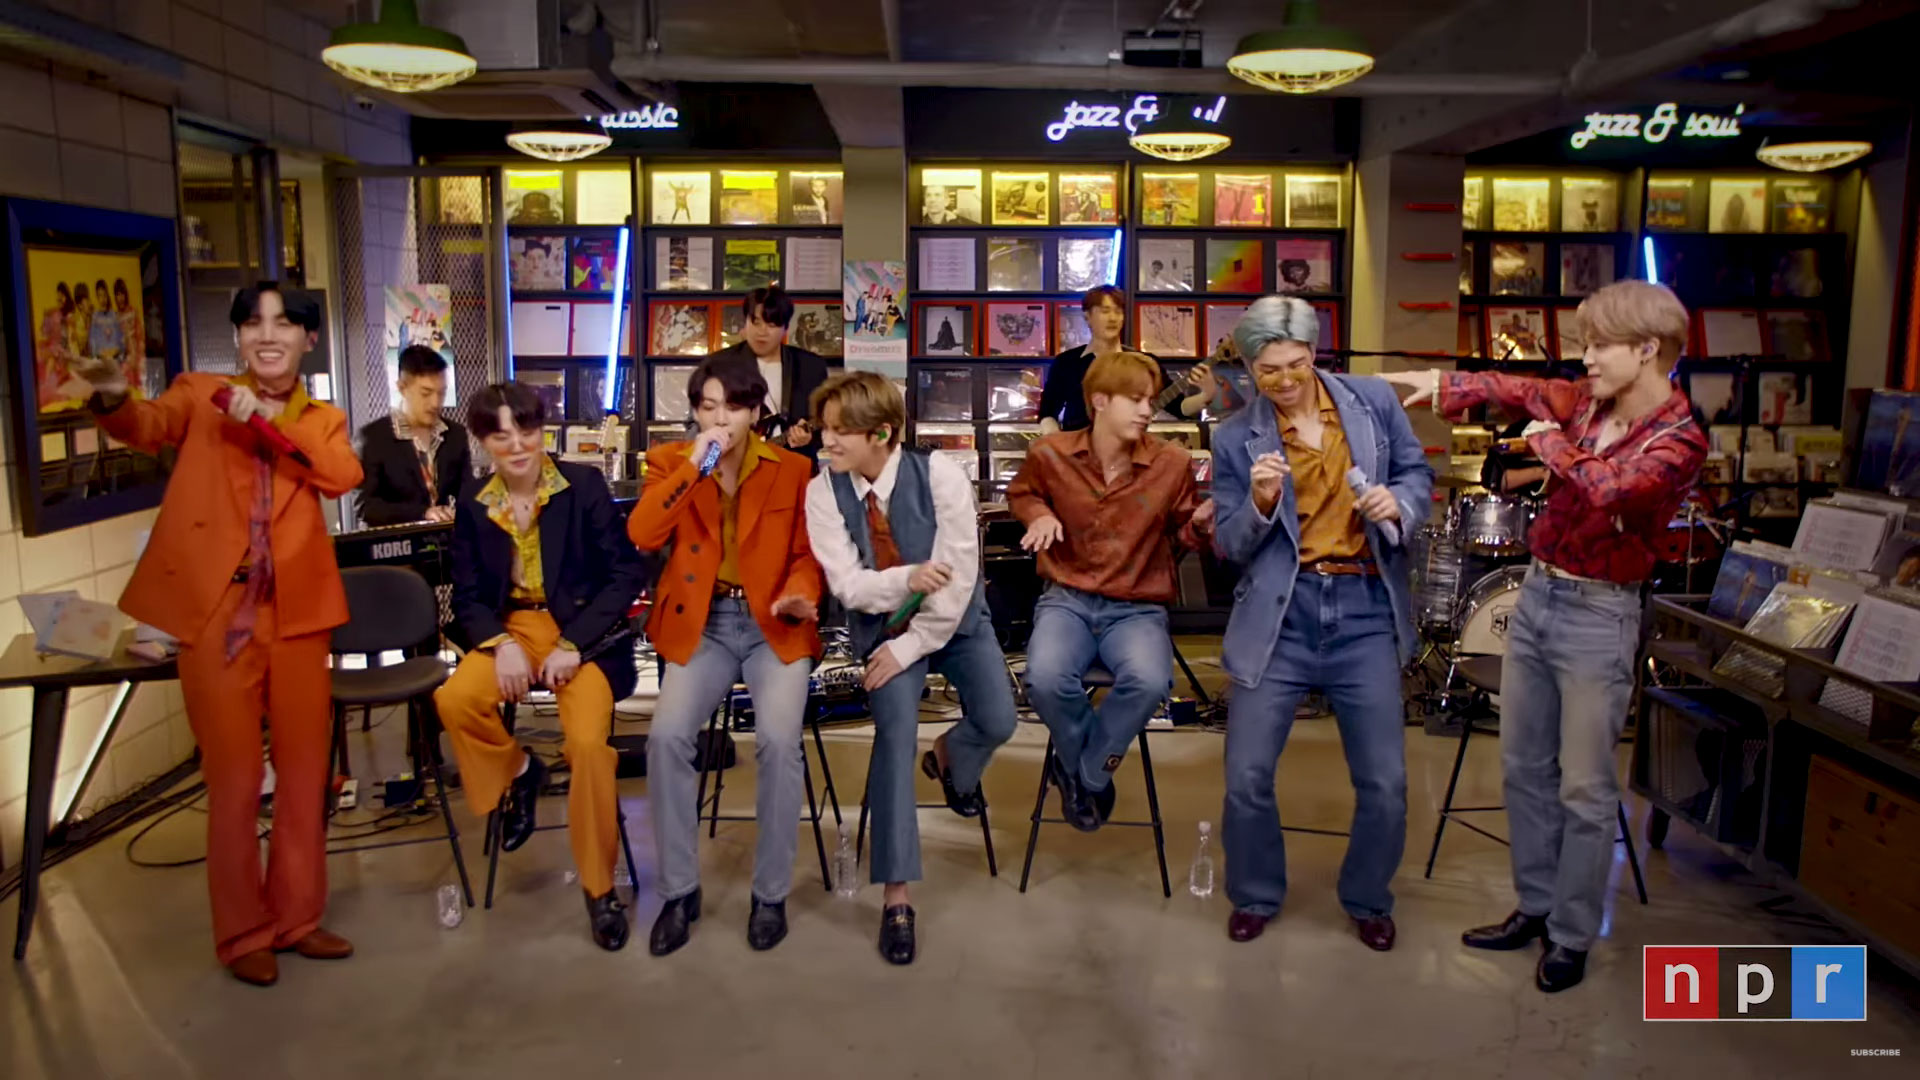 BTS did a Tiny Desk concert that may surprise you